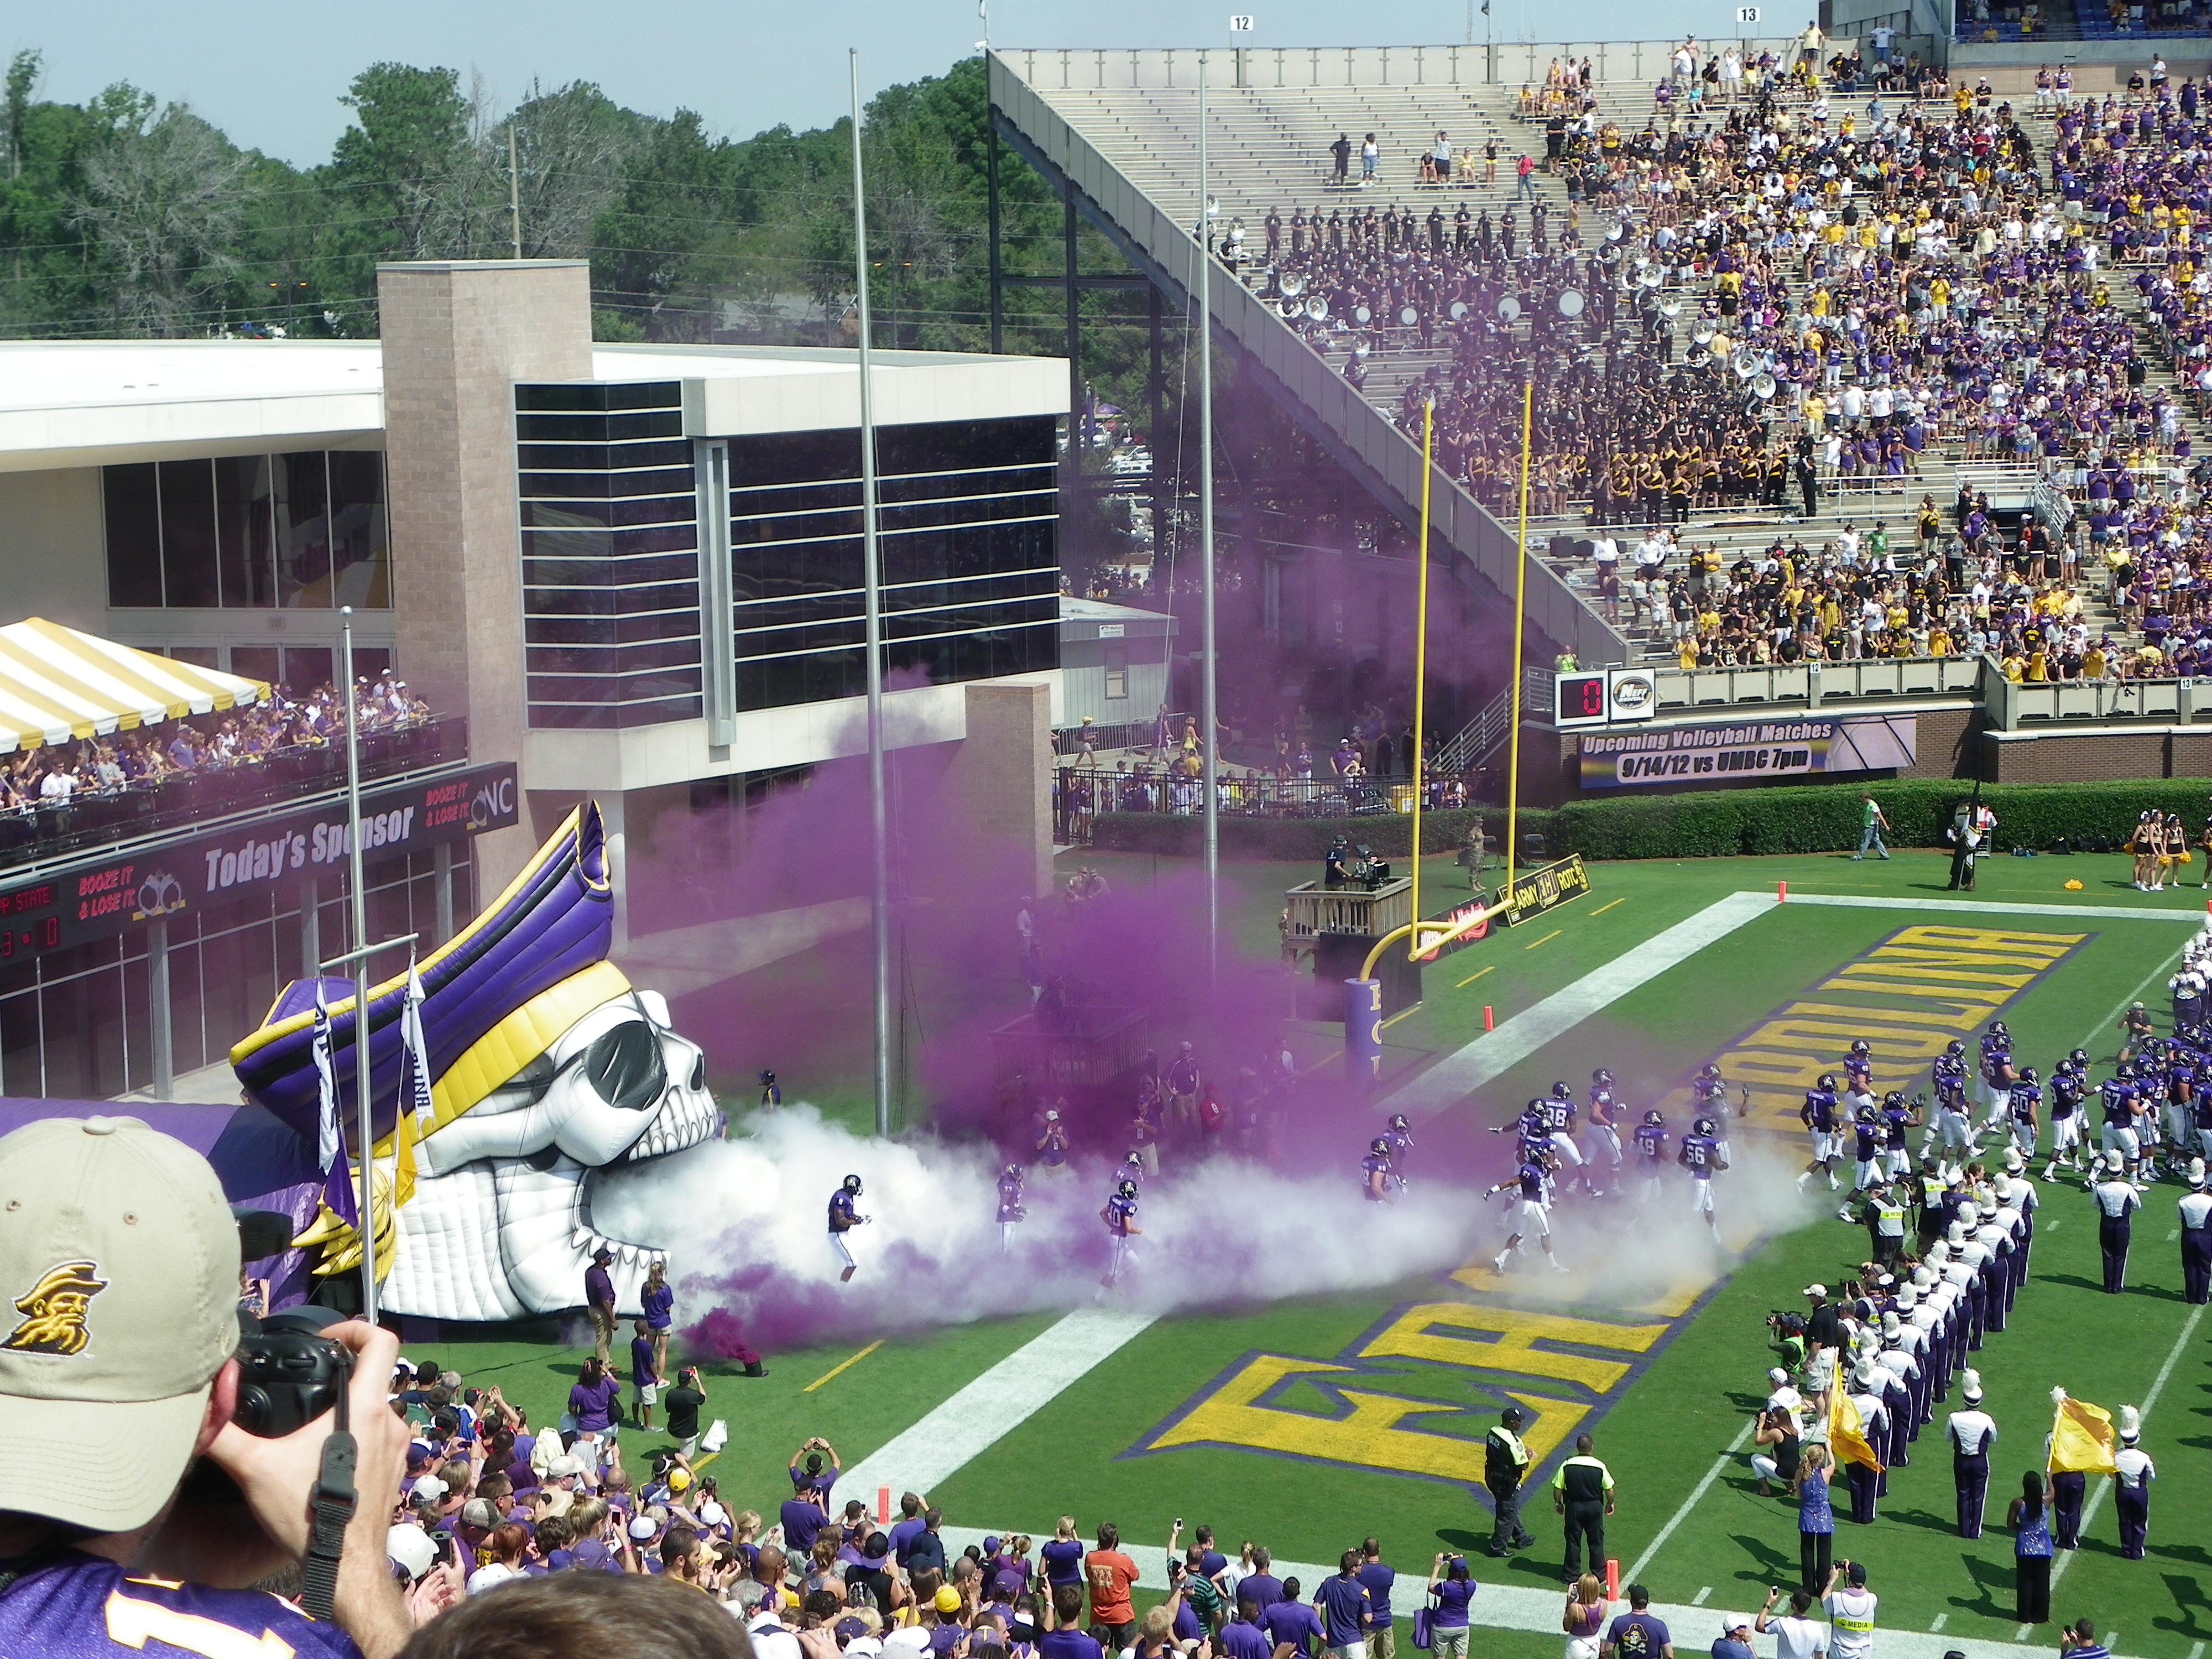 east carolina university East carolina university (ecu) is located in greenville, north carolina it is the third-largest university in the university of north carolina system with almost 28,000 students enrolled in various programs.